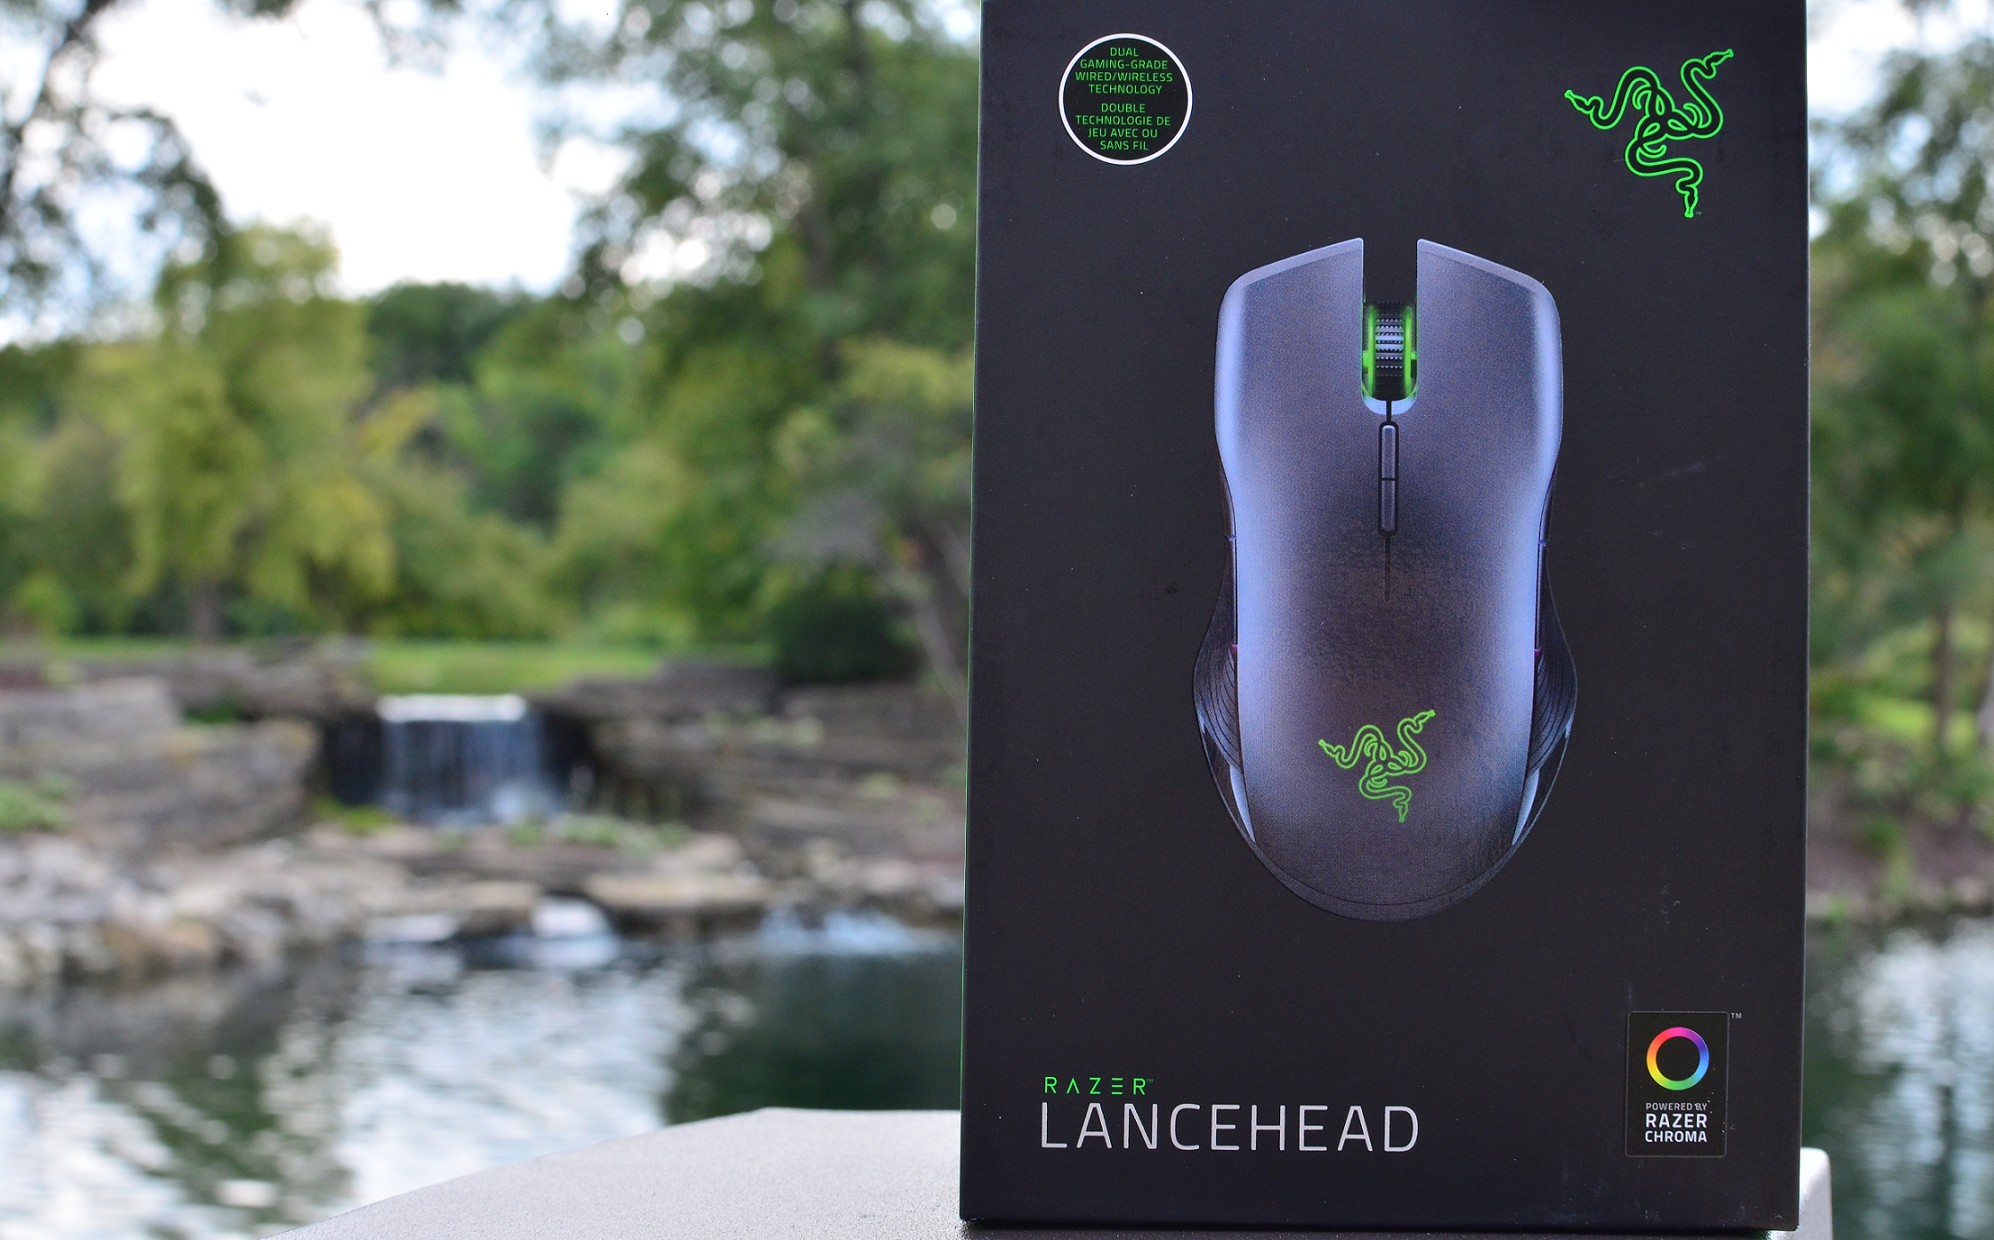 dba96411469 Razer Lancehead Wireless Gaming Mouse Review – Deadly With or Without Wires